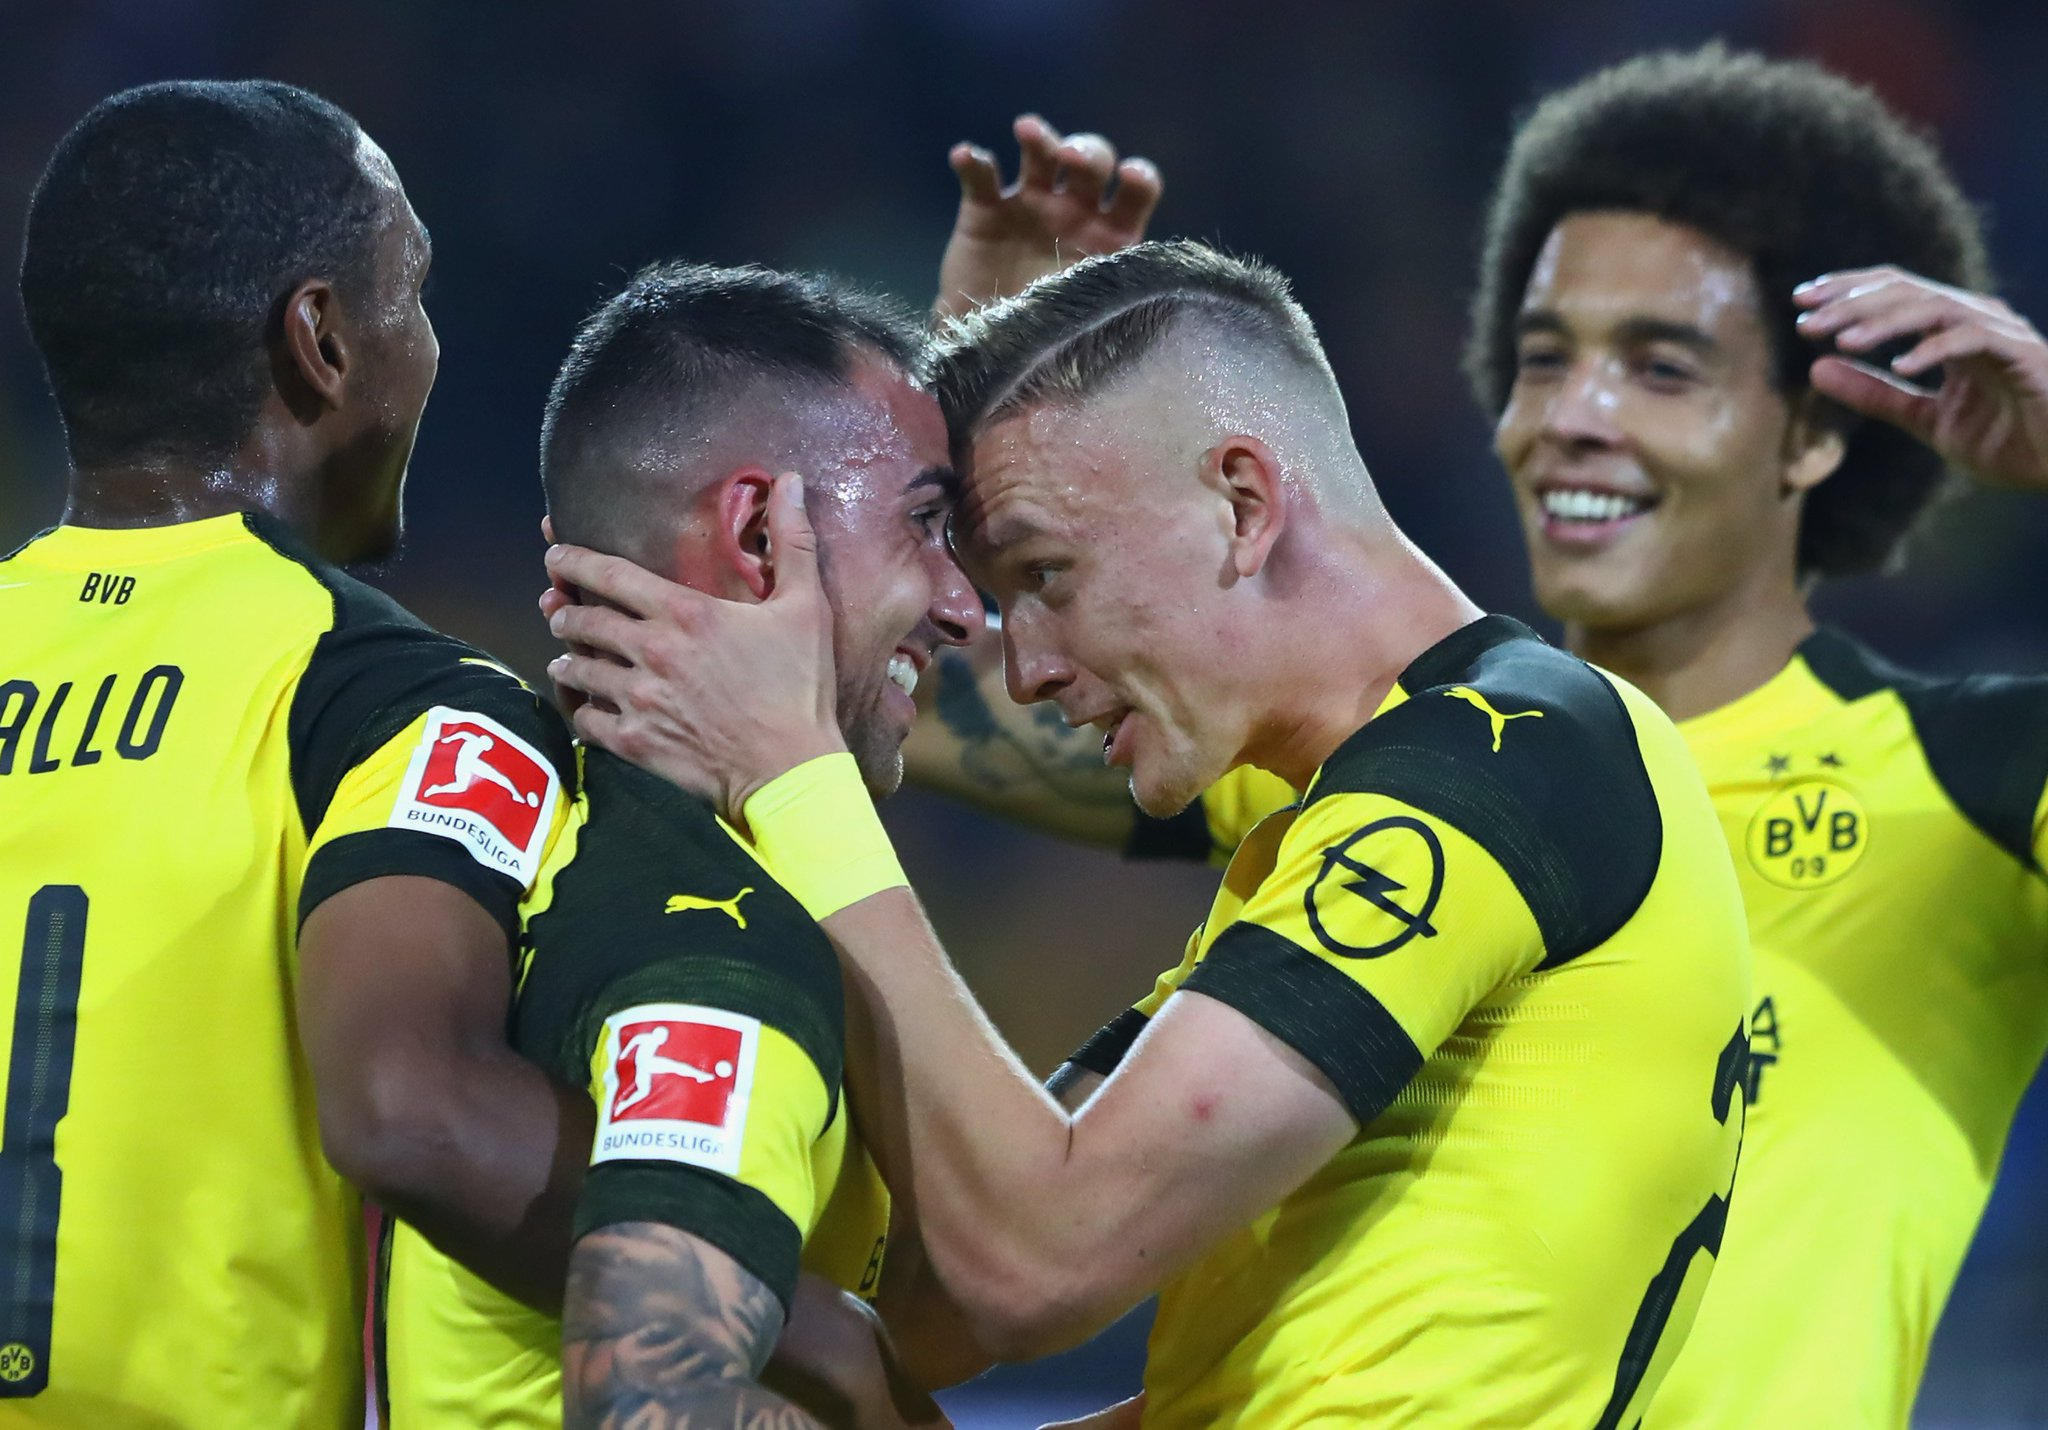 Paco Alcácer scored his first goal for Dortmund as they saw off Eintracht 3-1 in the Bundesliga this evening.  #UCL https://t.co/Y6DiYCUEe8